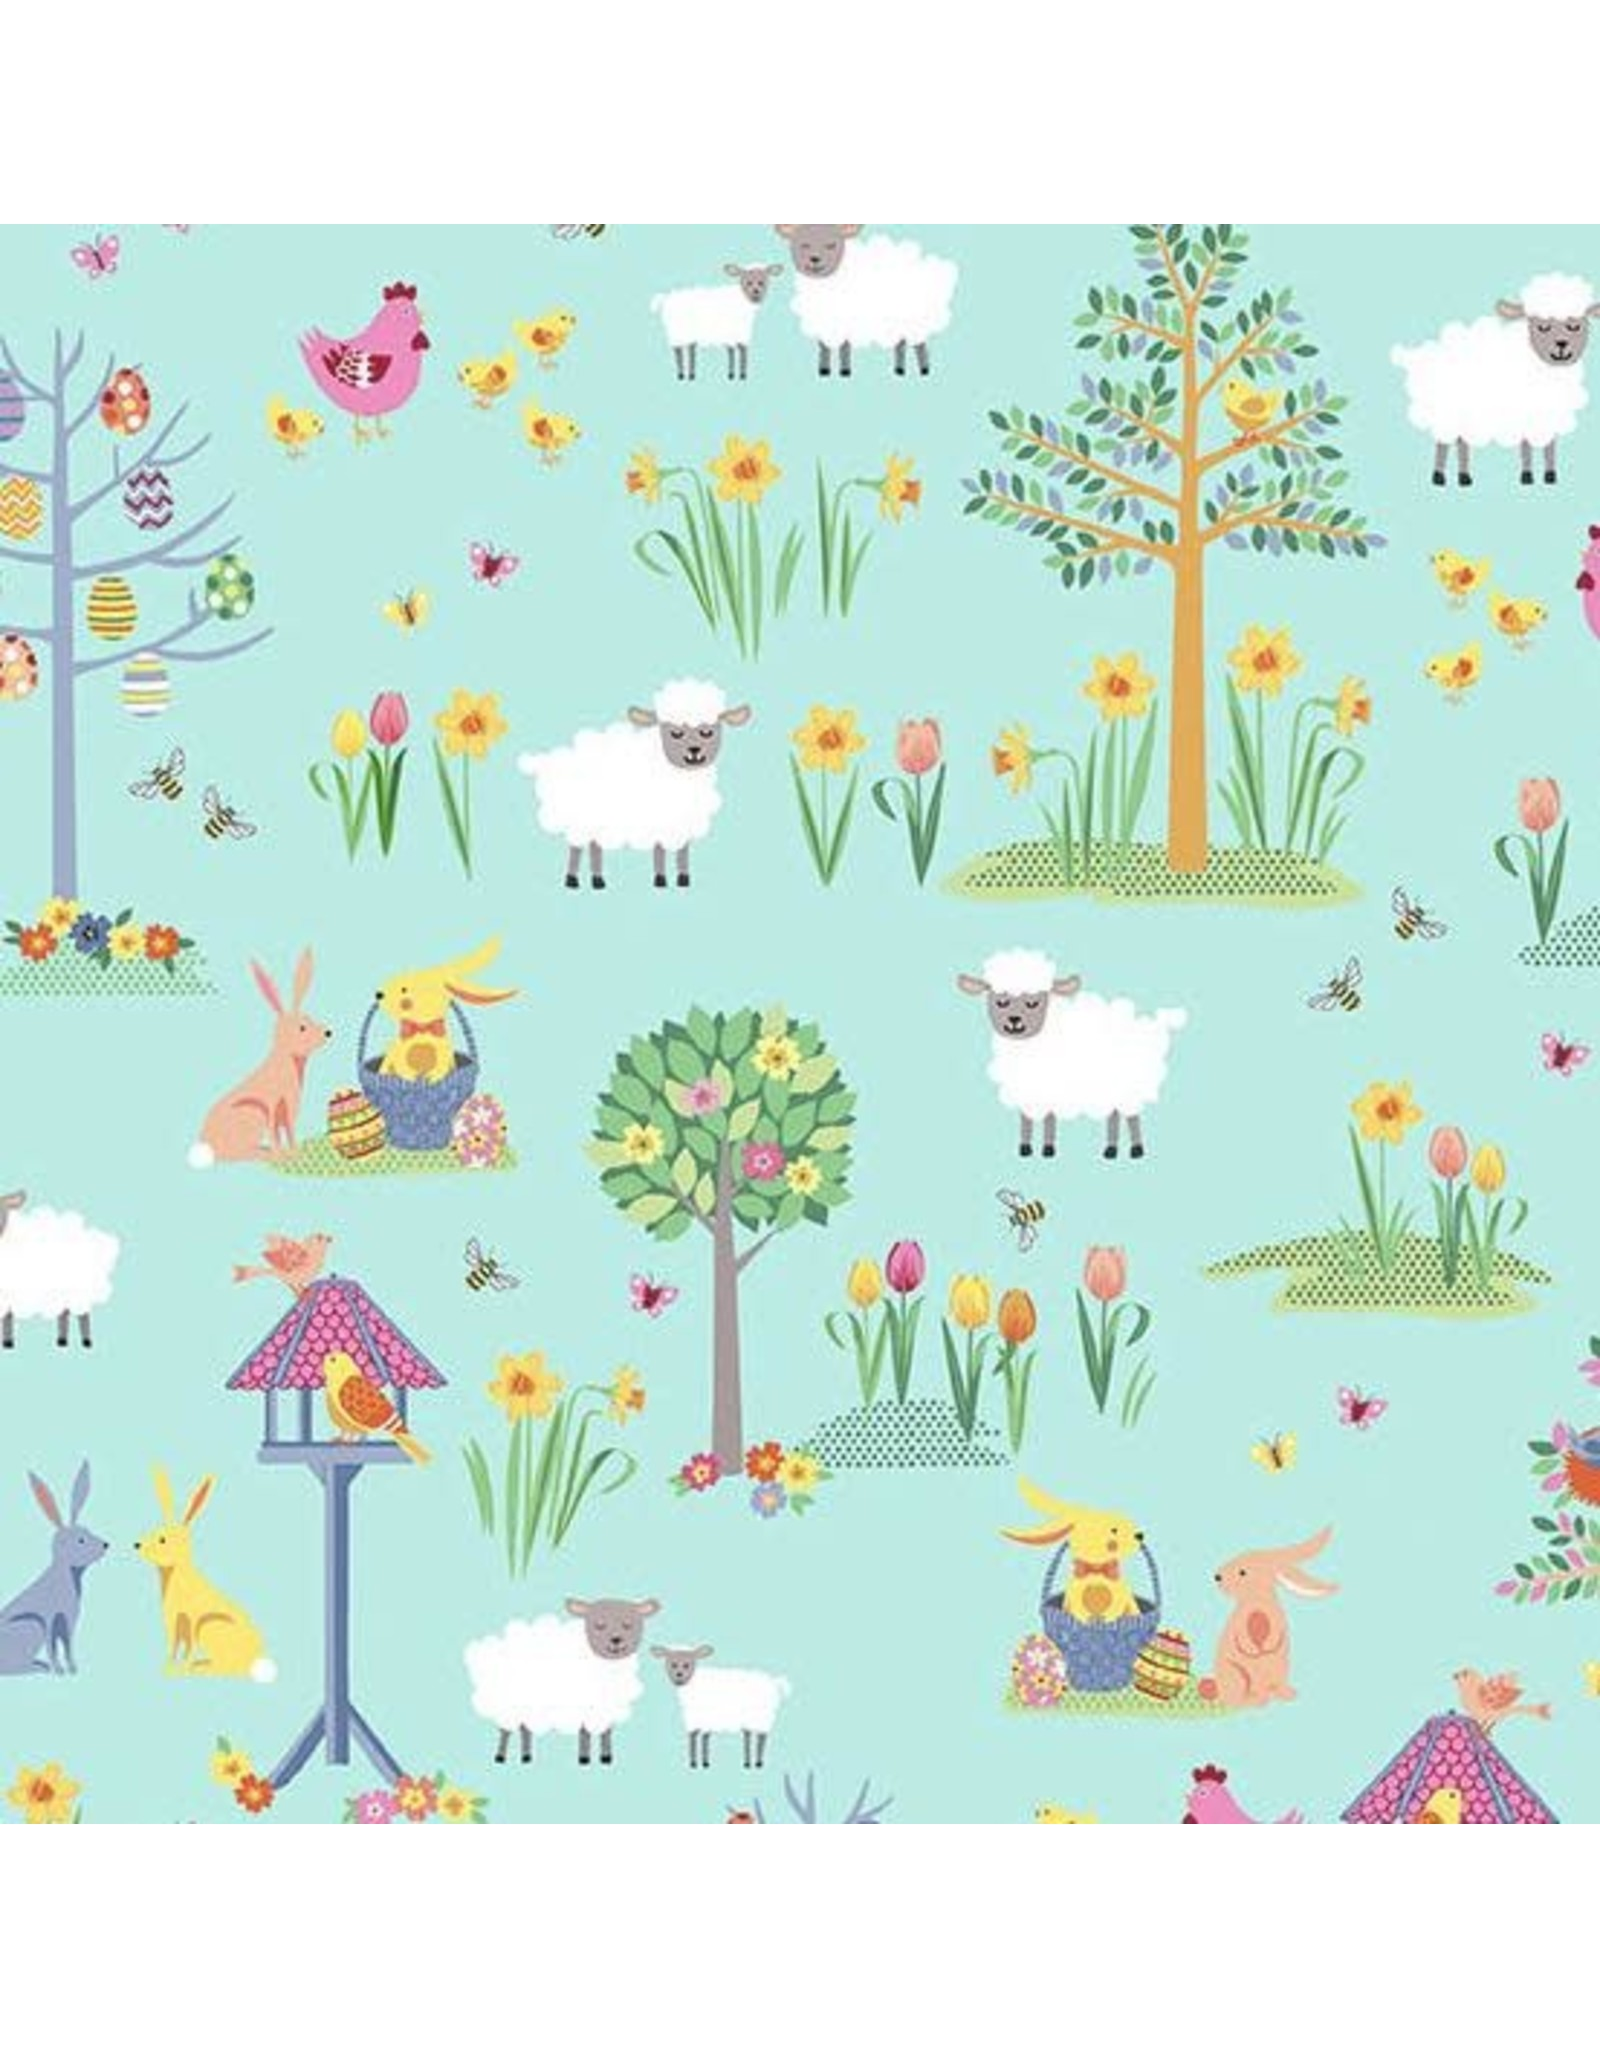 Andover Fabrics Spring, Easter Garden in Teal, Fabric Half-Yards TP-2187-T